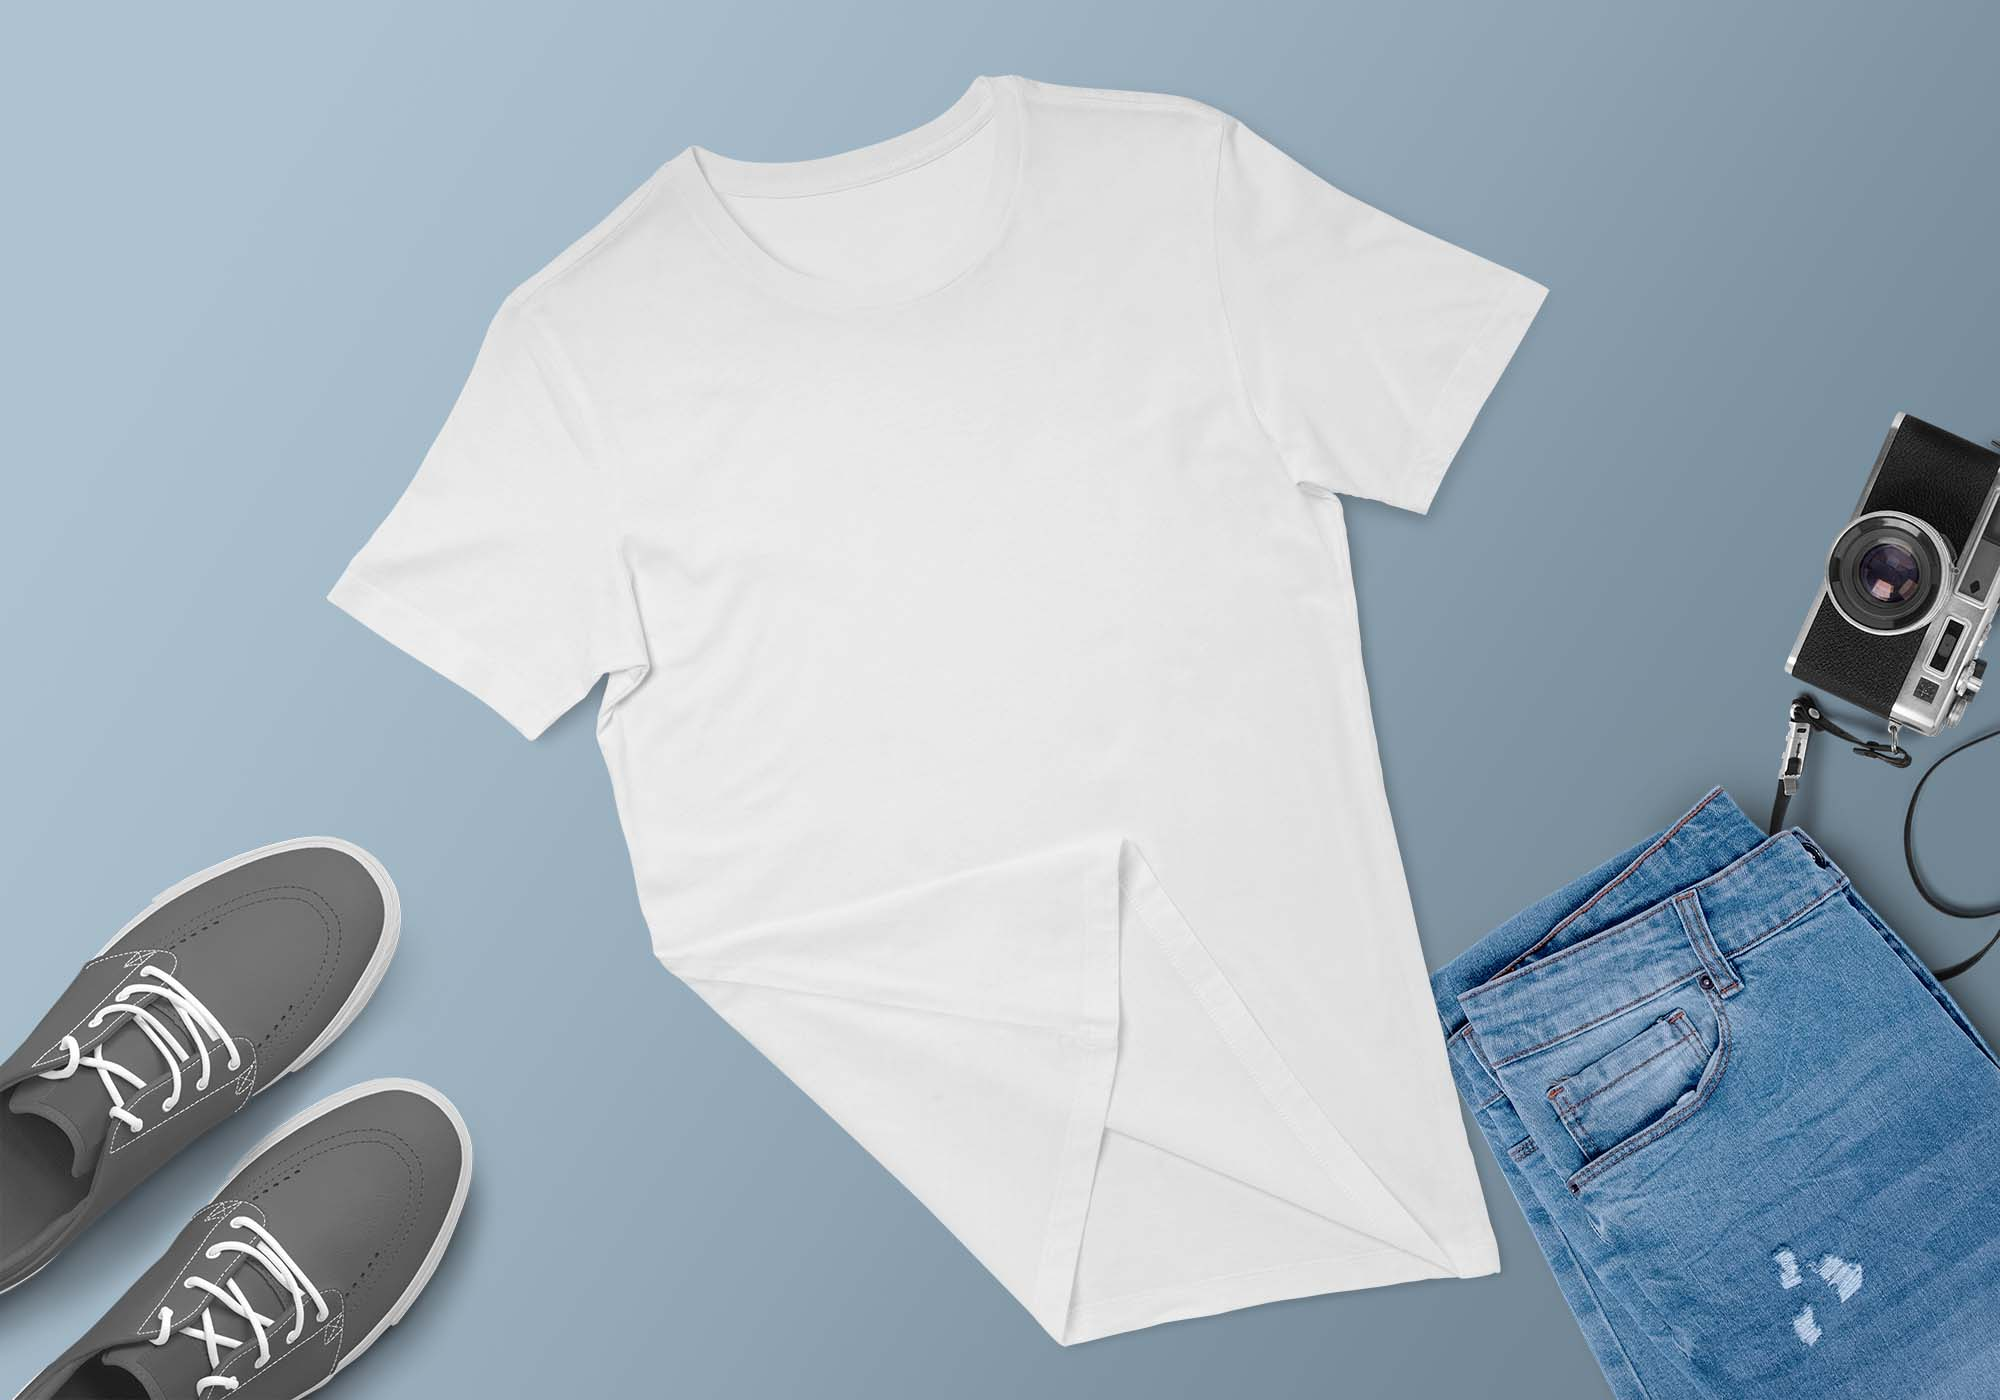 T-Shirt Apparel Scene Mockup 2